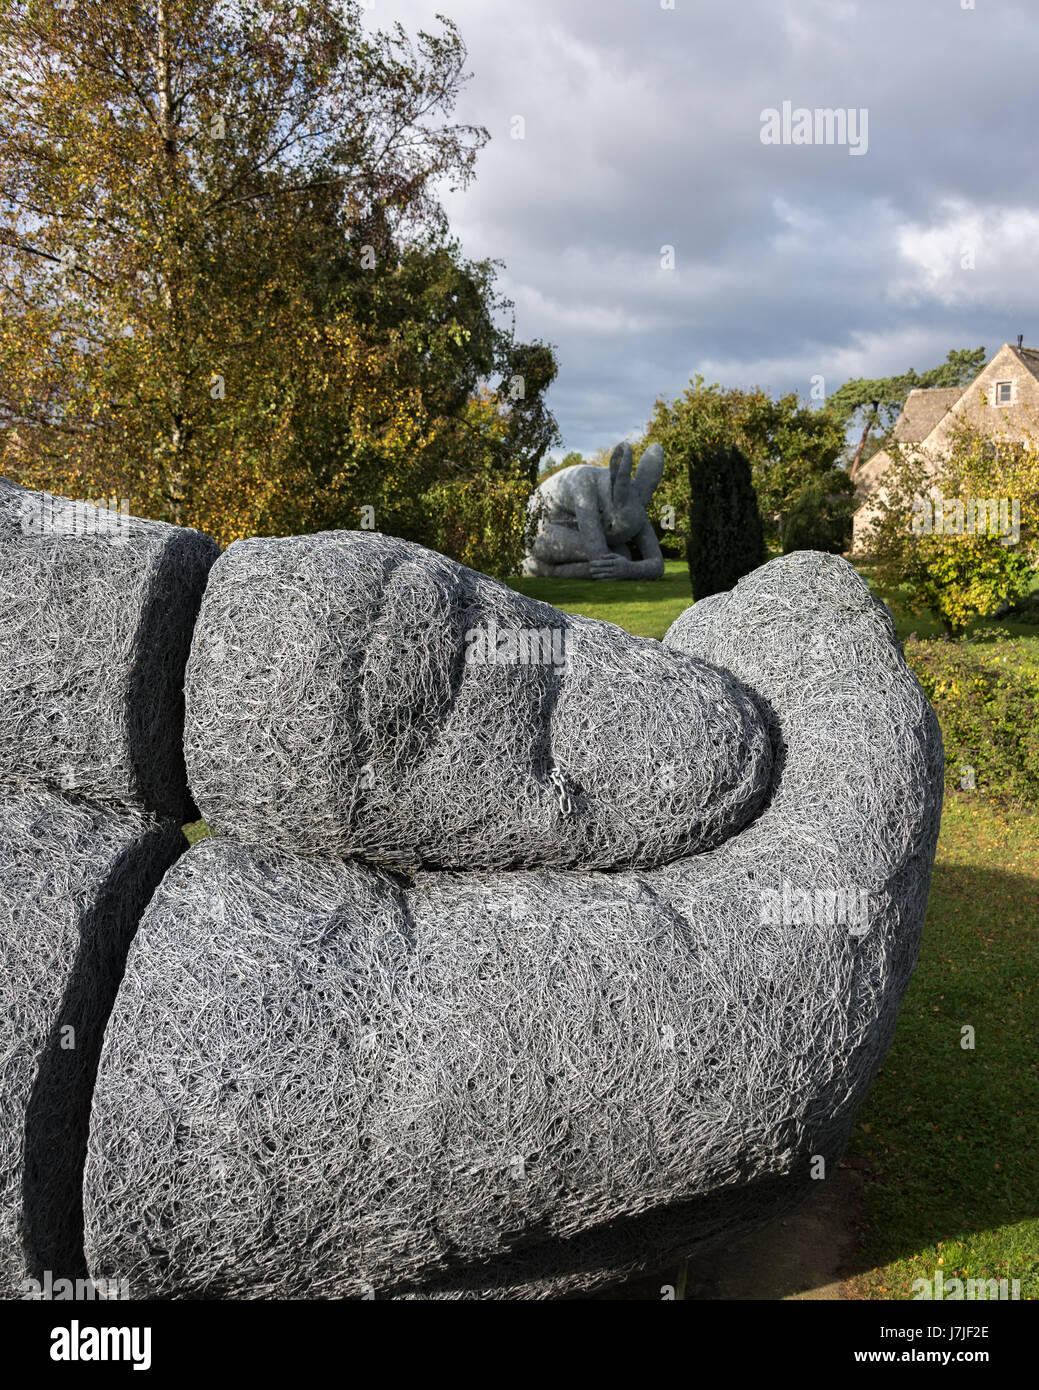 Large sculpture of a hand by Sophie ryder on garden lawn - Stock Image